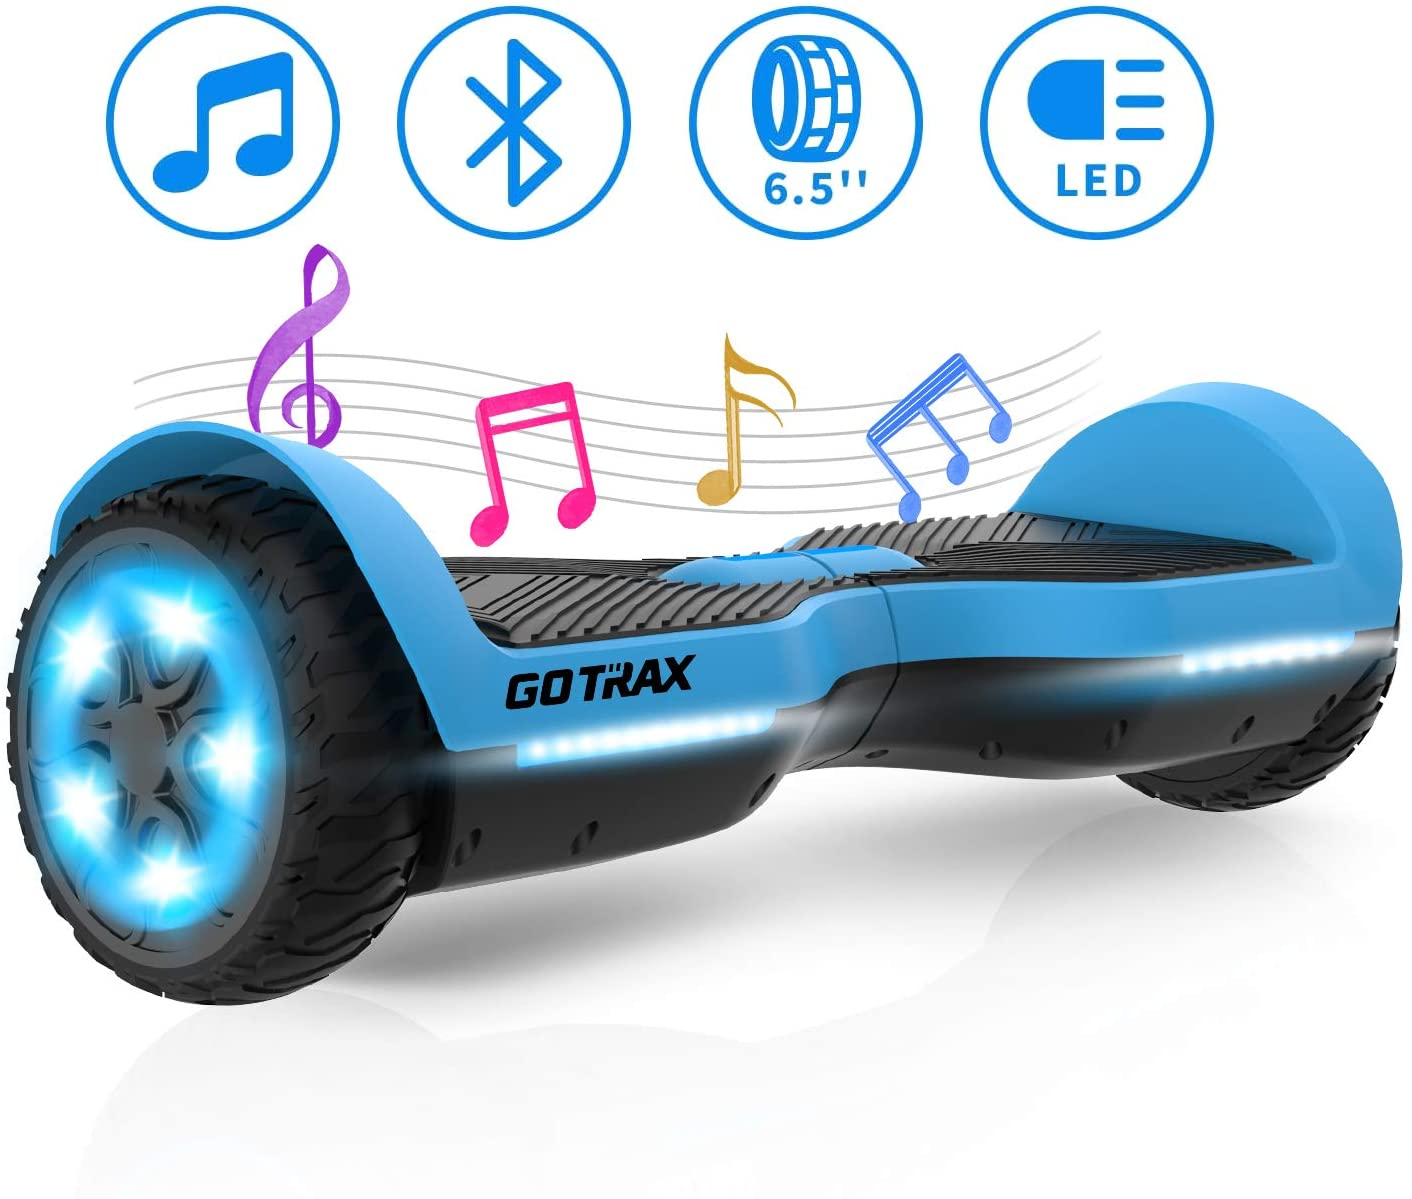 GOTRAX Hoverboard with Bluetooth Speaker, LED 6.5 inch Wheels, UL2272 Certified, Big Capacity Lithium-Ion Battery Up to Max Work 75minutes per Charge, Dual Motor up to Max 10km/h